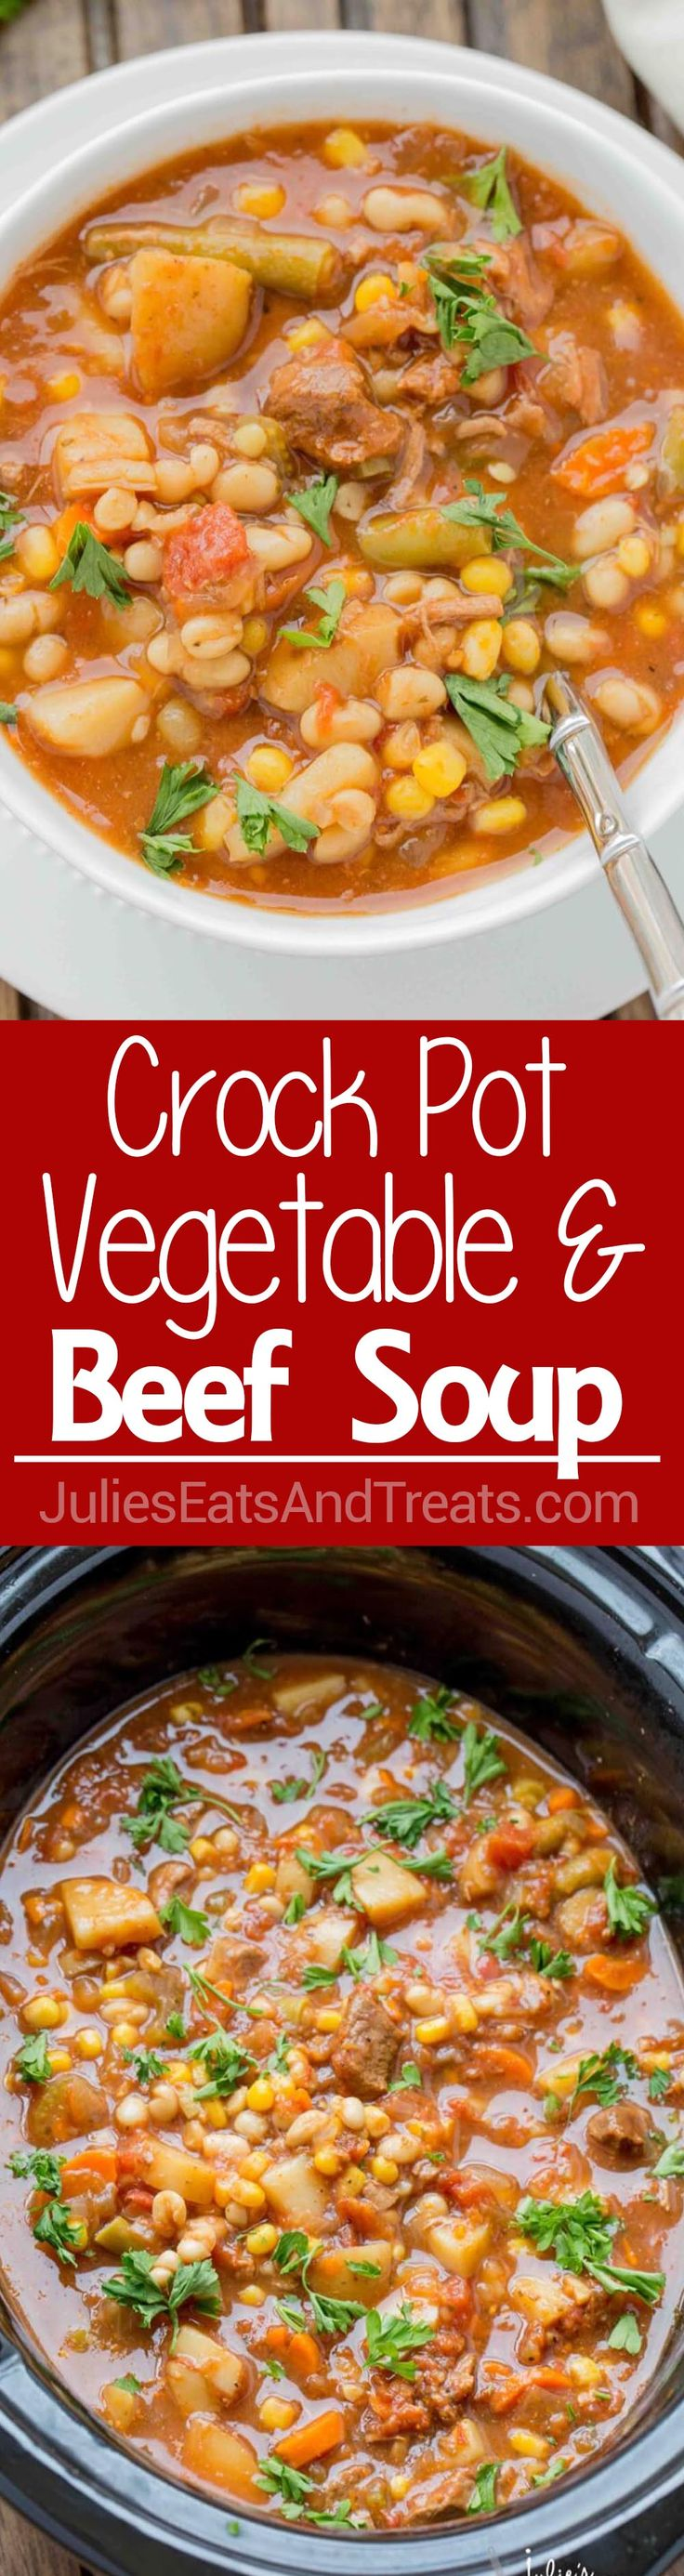 Crock Pot Beef & Vegetable Soup ~ Easy to make, loaded with hearty vegetables & delicious beef. This is one slow cooker soup you must make this winter.